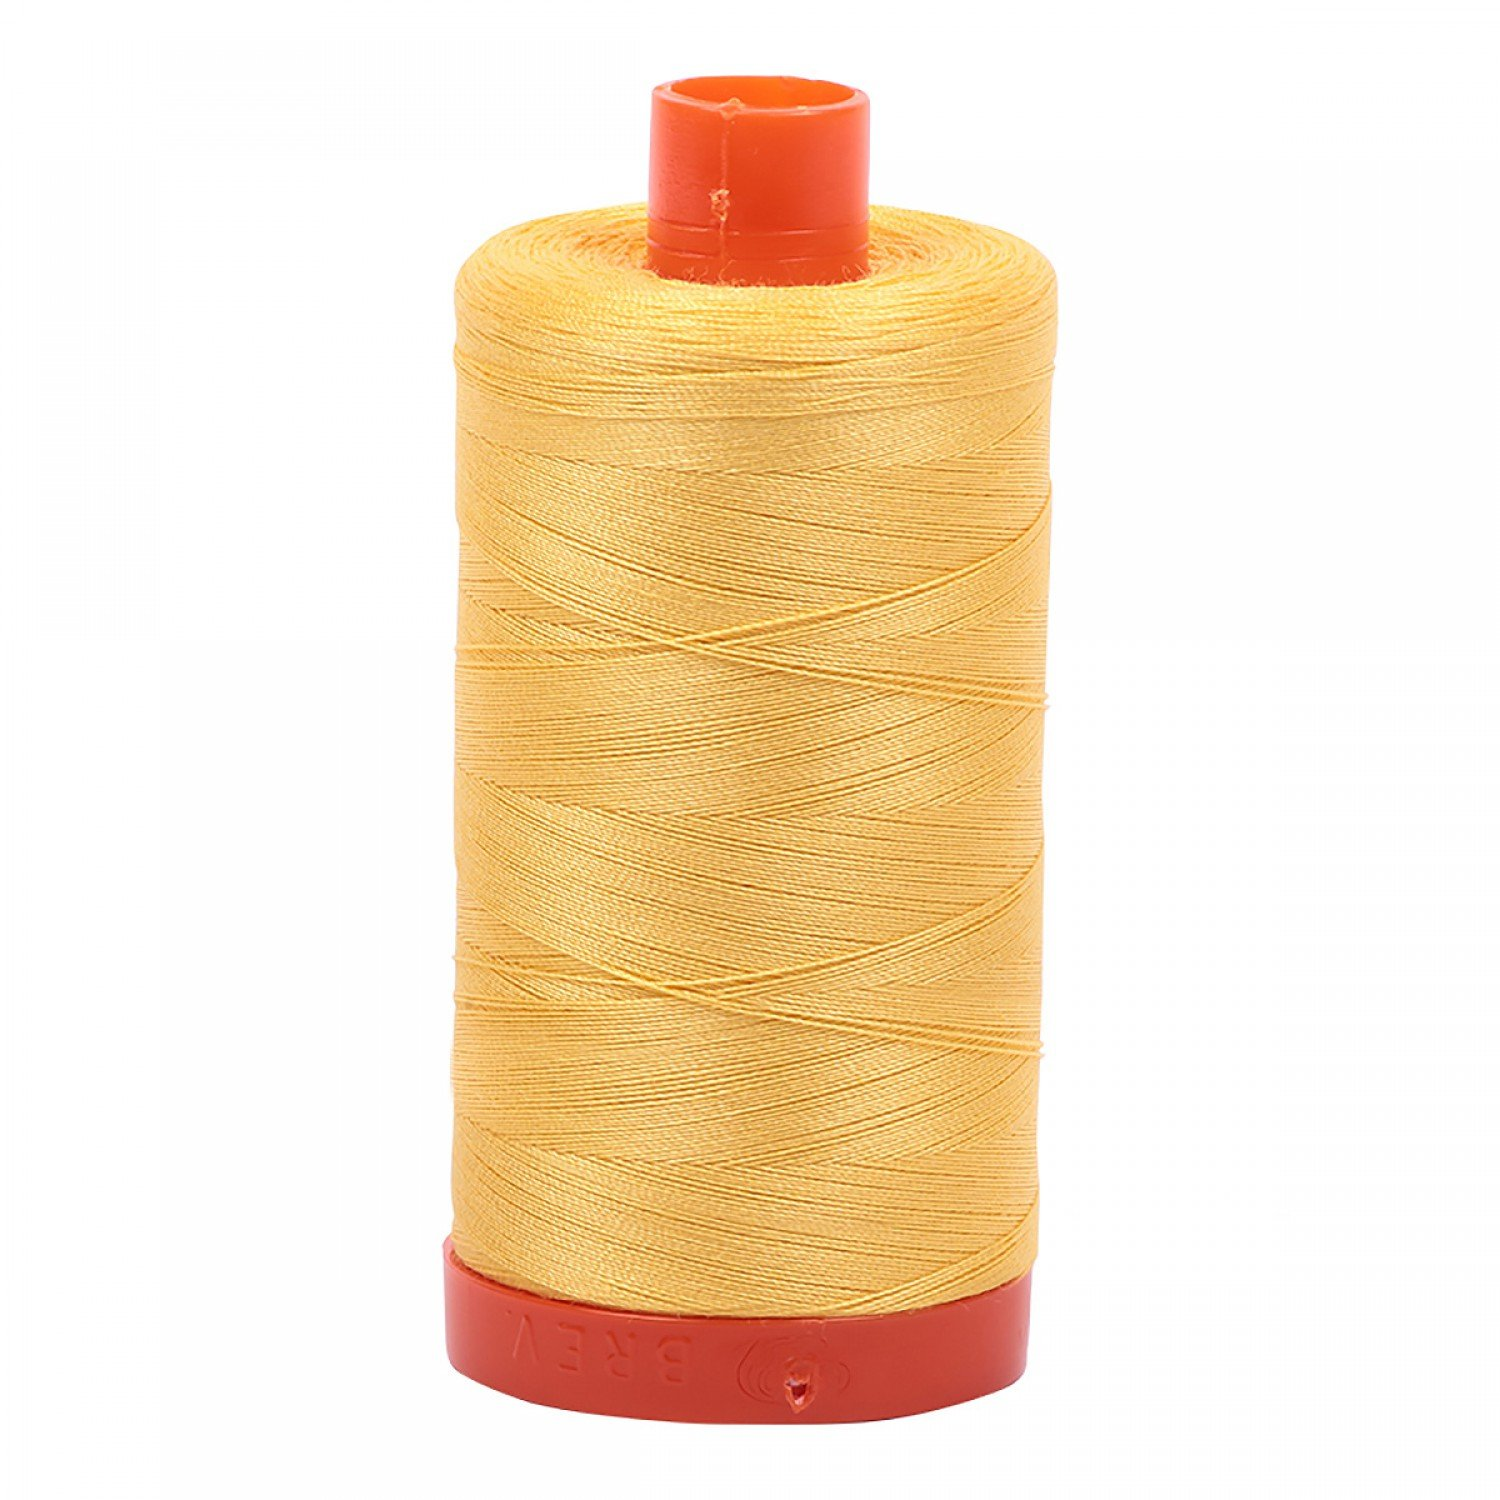 Aurifil Mako Cotton Thread 50 wt 1422 yds 1135 Pale Yellow